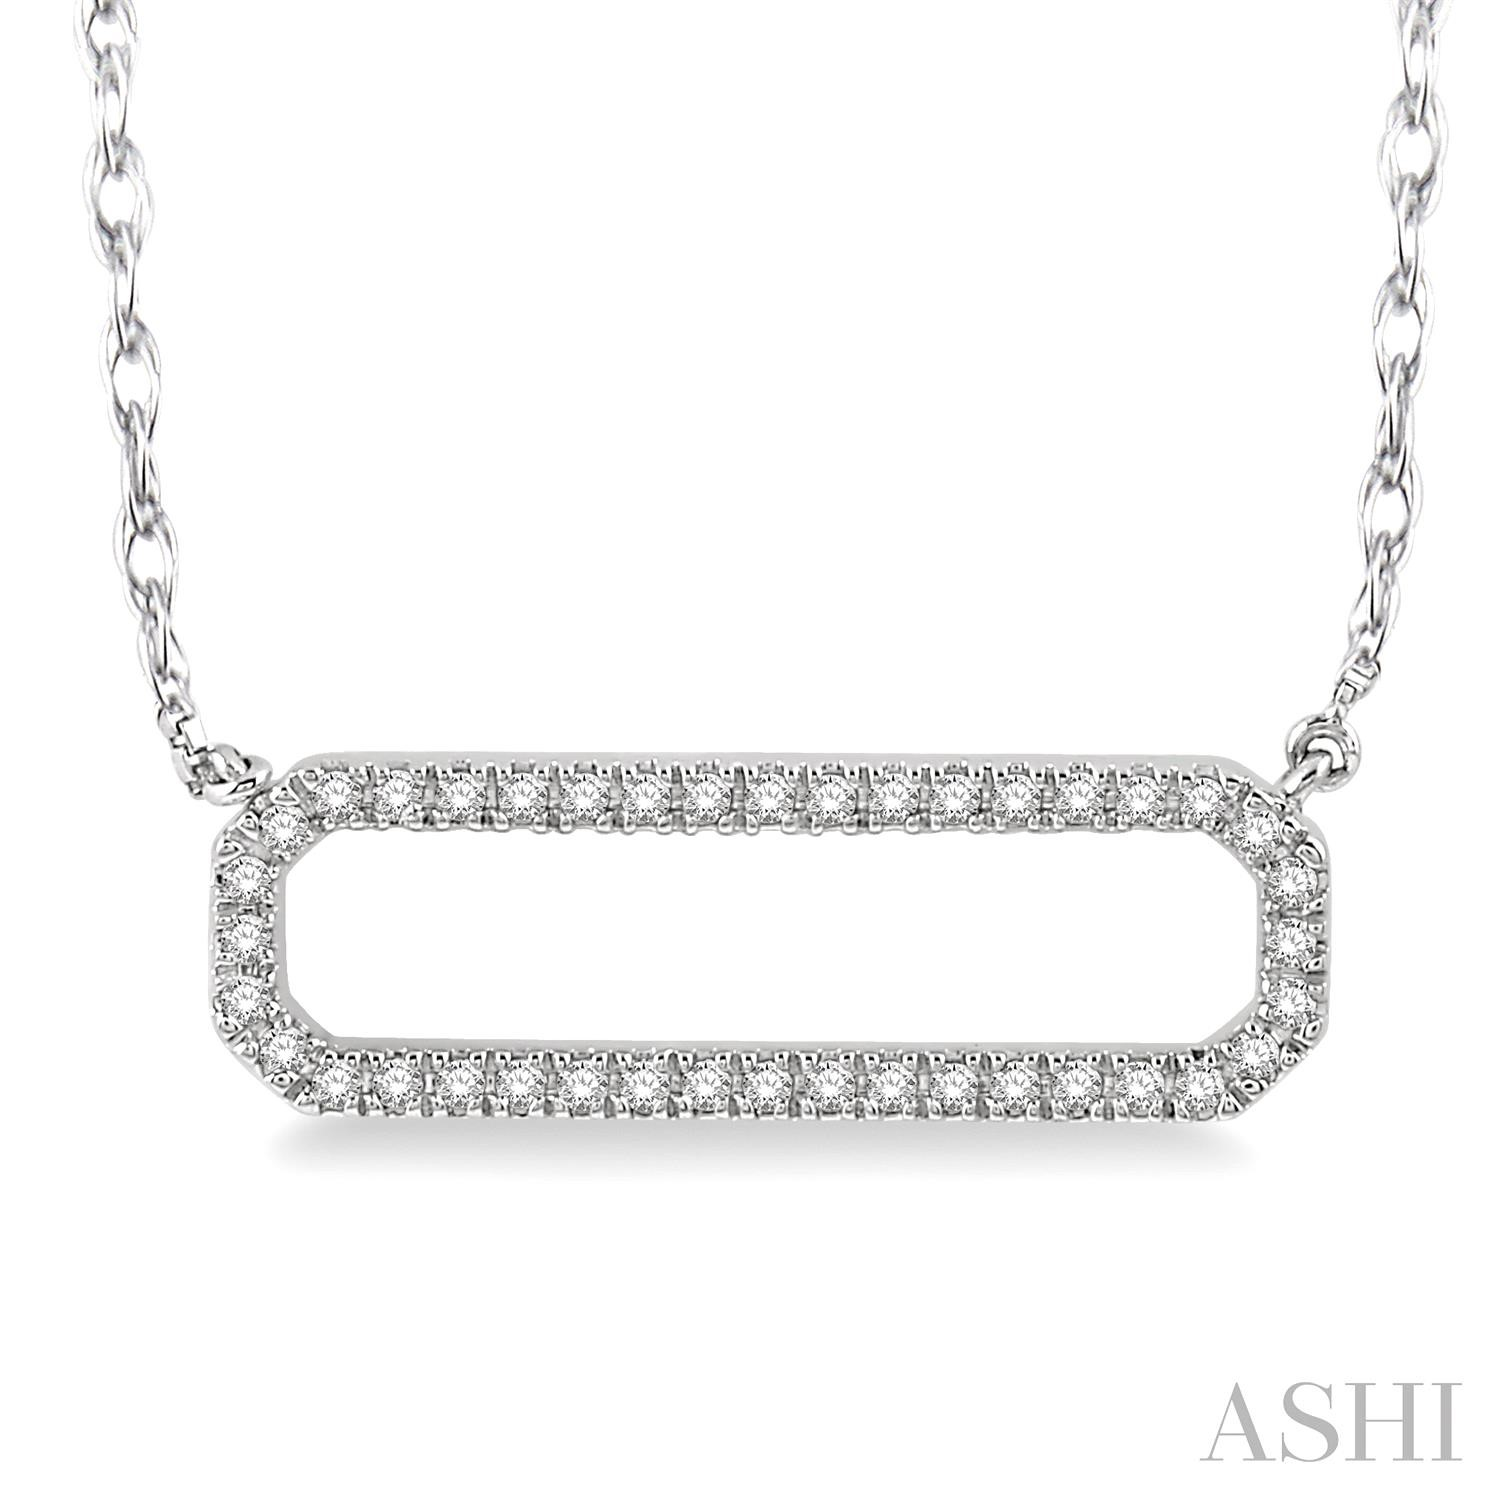 DIAMOND ROUNDED RECTANGLE NECKLACE